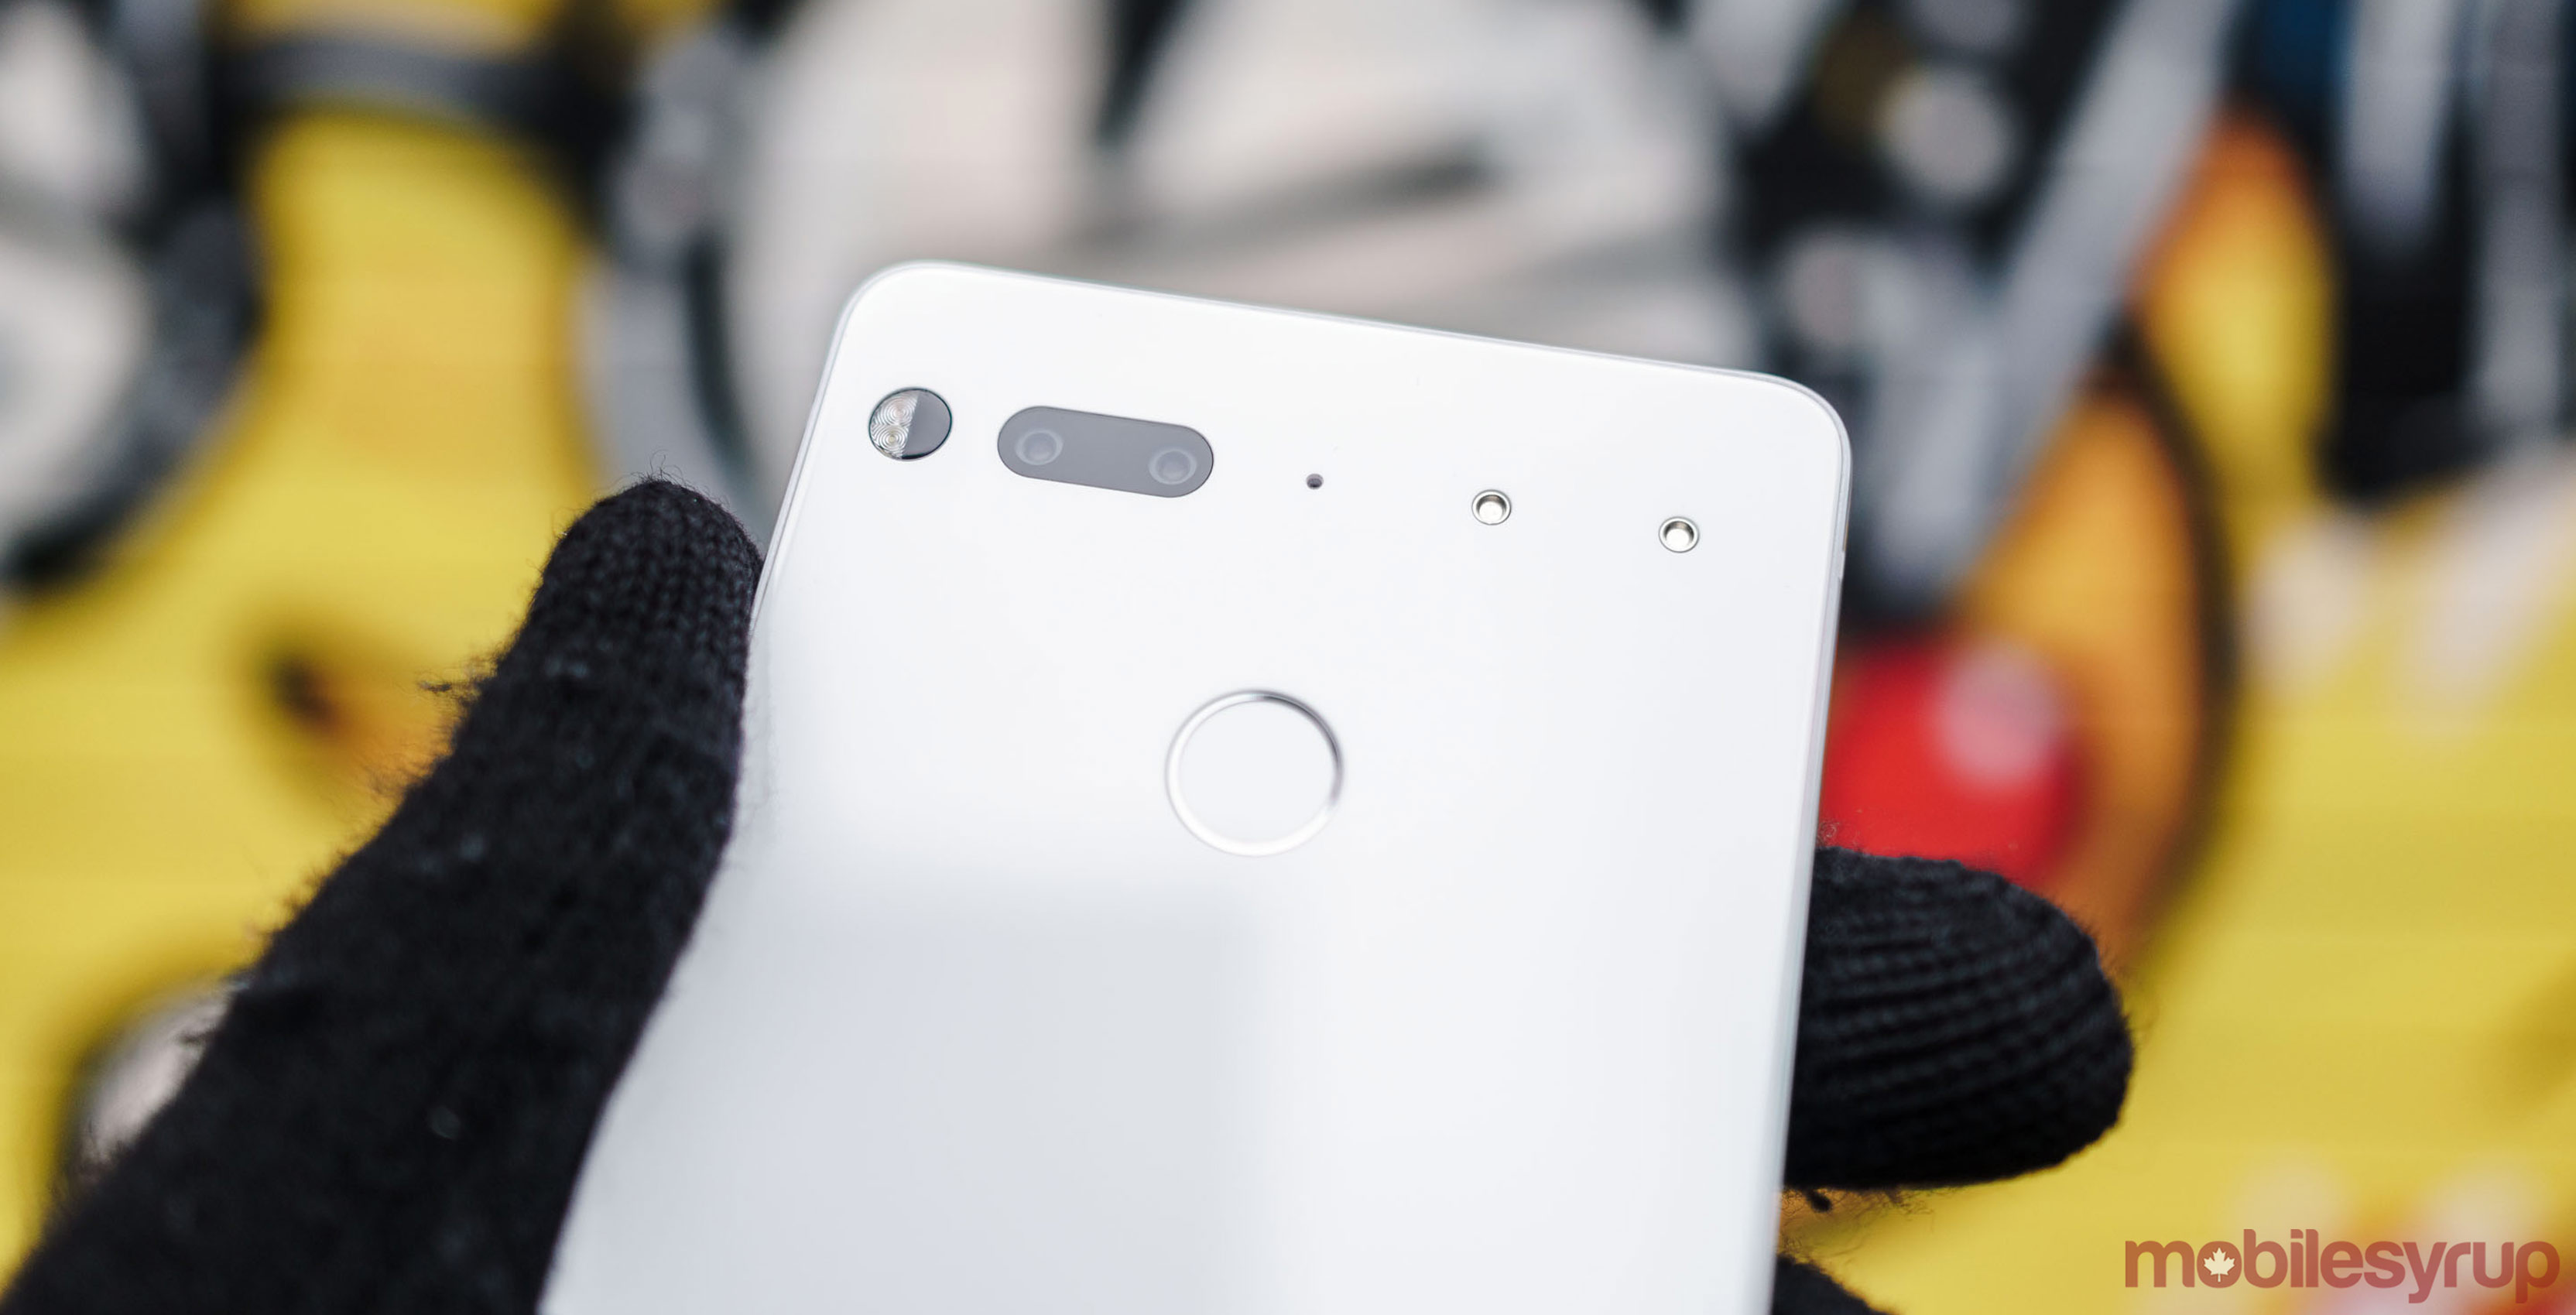 Essential Phone in 'Pure White'